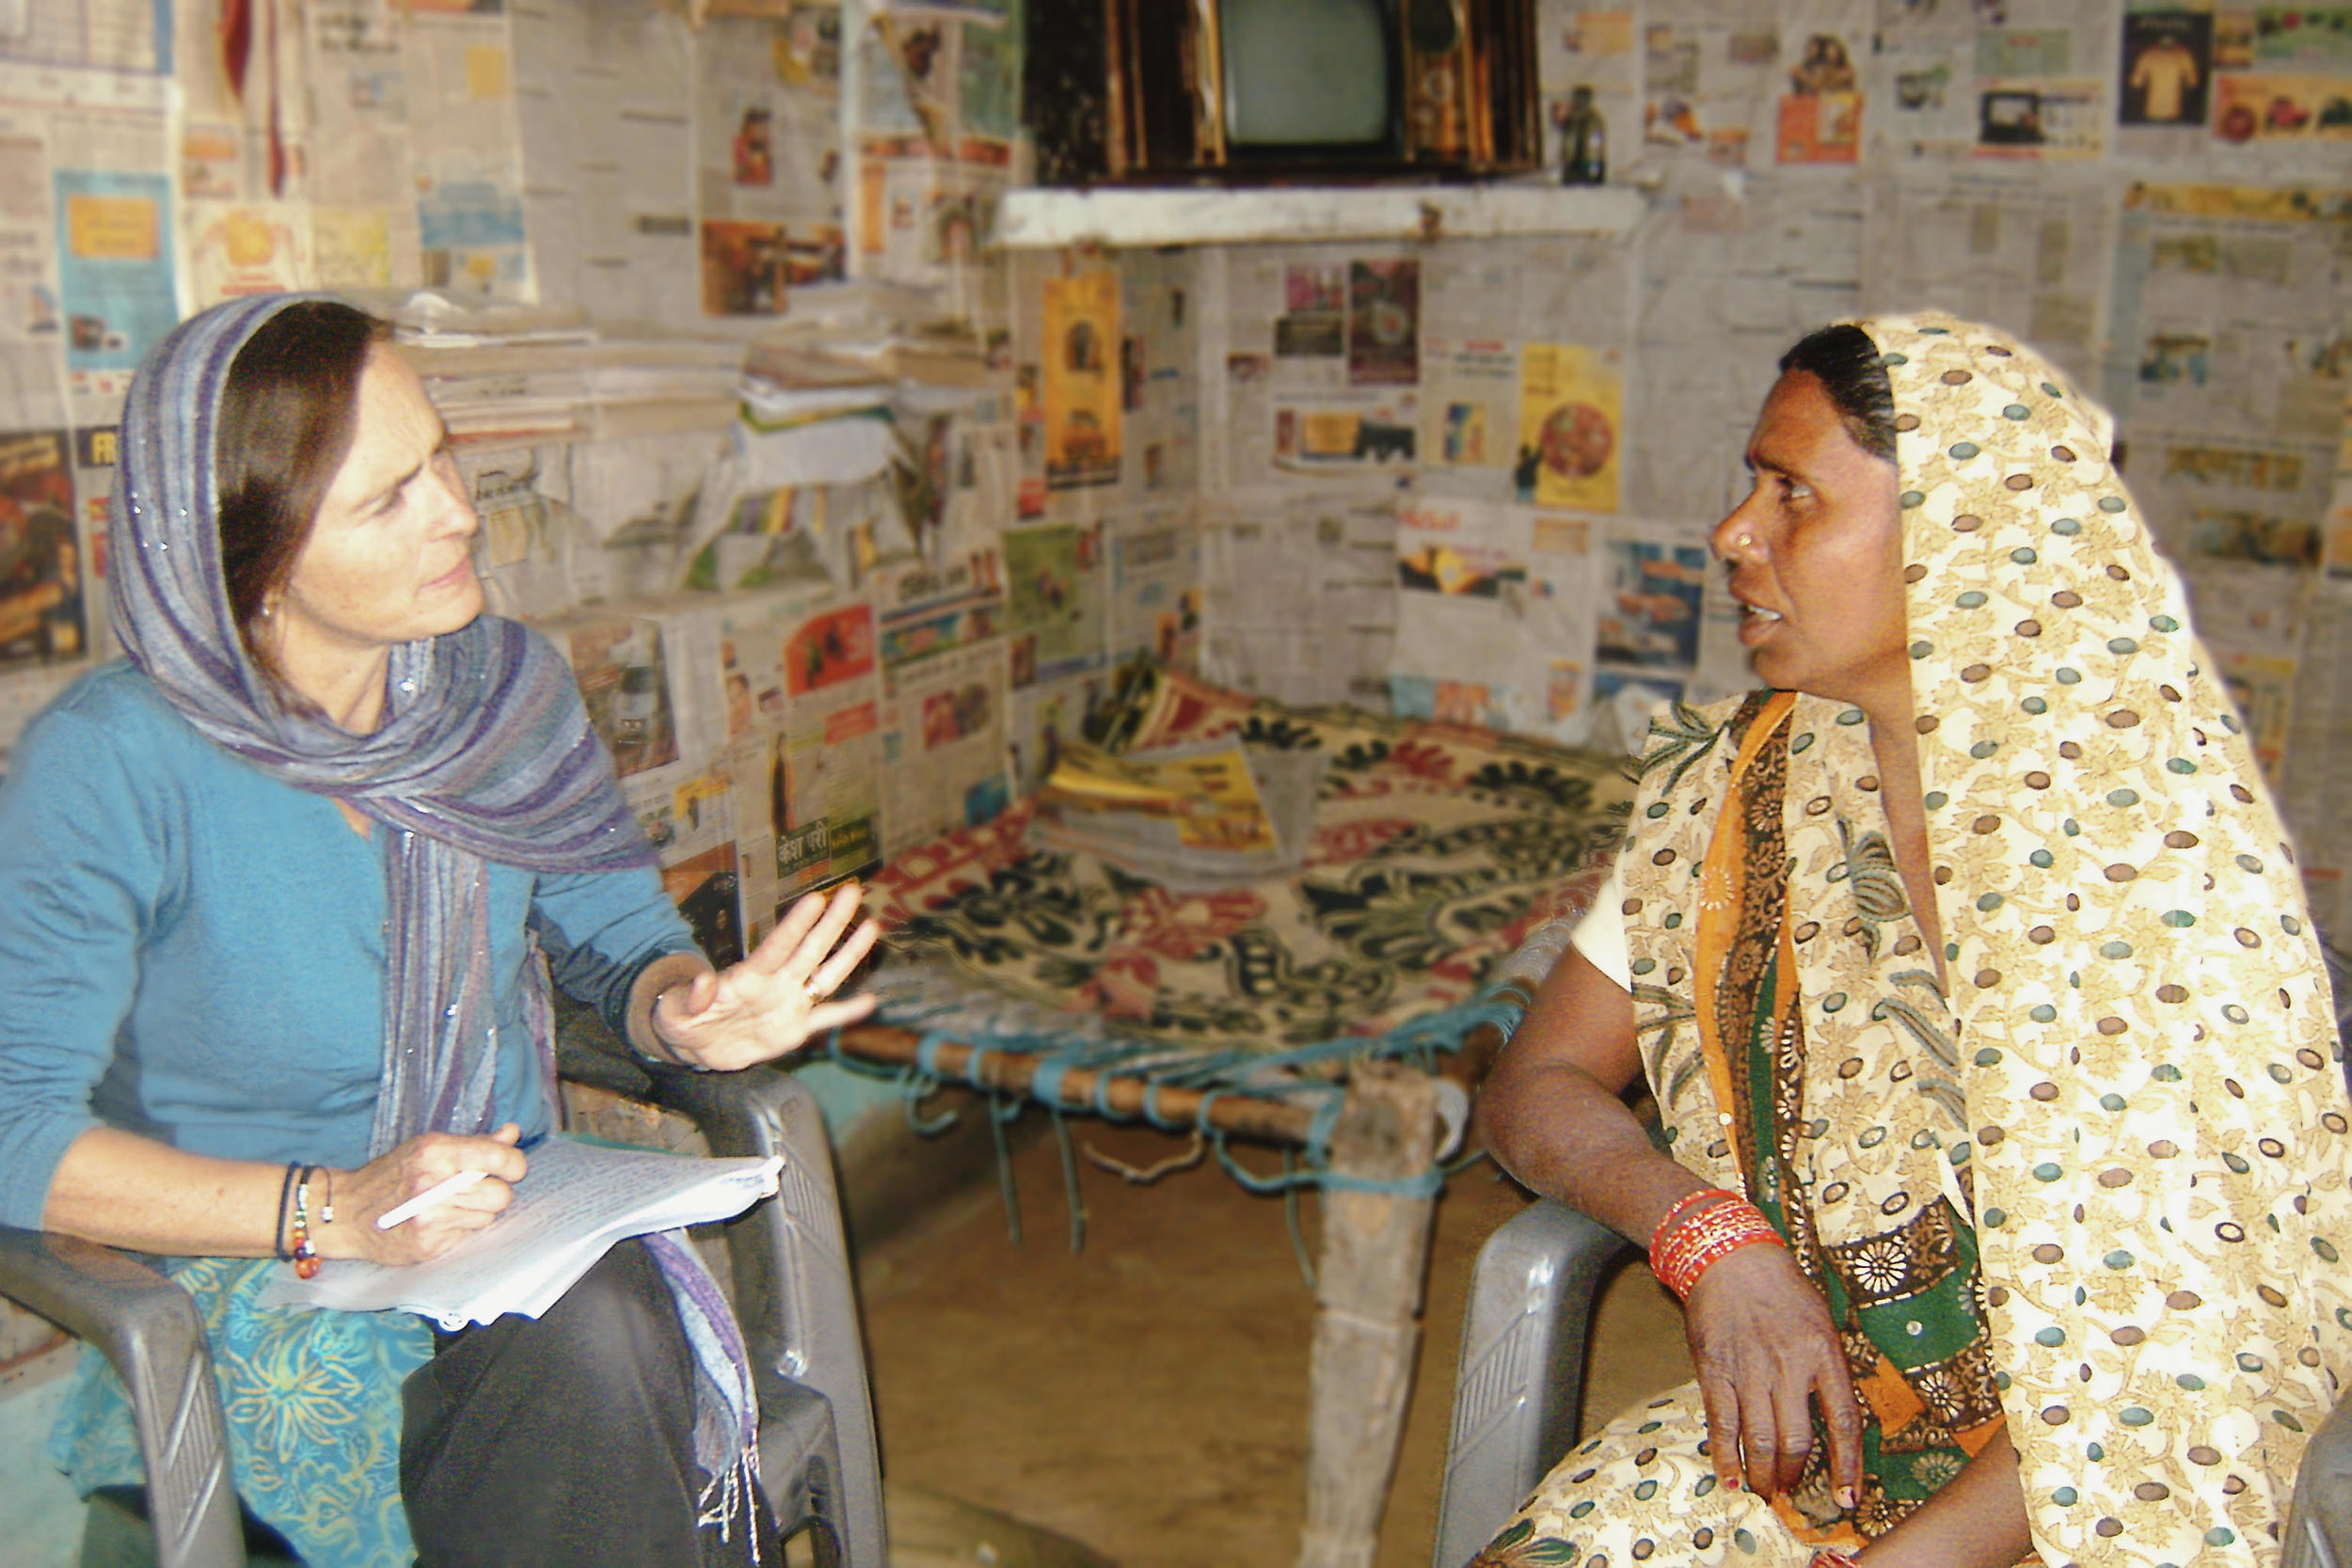 """For a long time, mission hospitals and doctors have focused on physical health. Yet there's a very tender vulnerability about mental health that is a really important place for us to be,"" says Dr. Kaaren Mathias, shown here talking to a woman affected by mental distress. - photo courtesy of Kaaren Mathias"